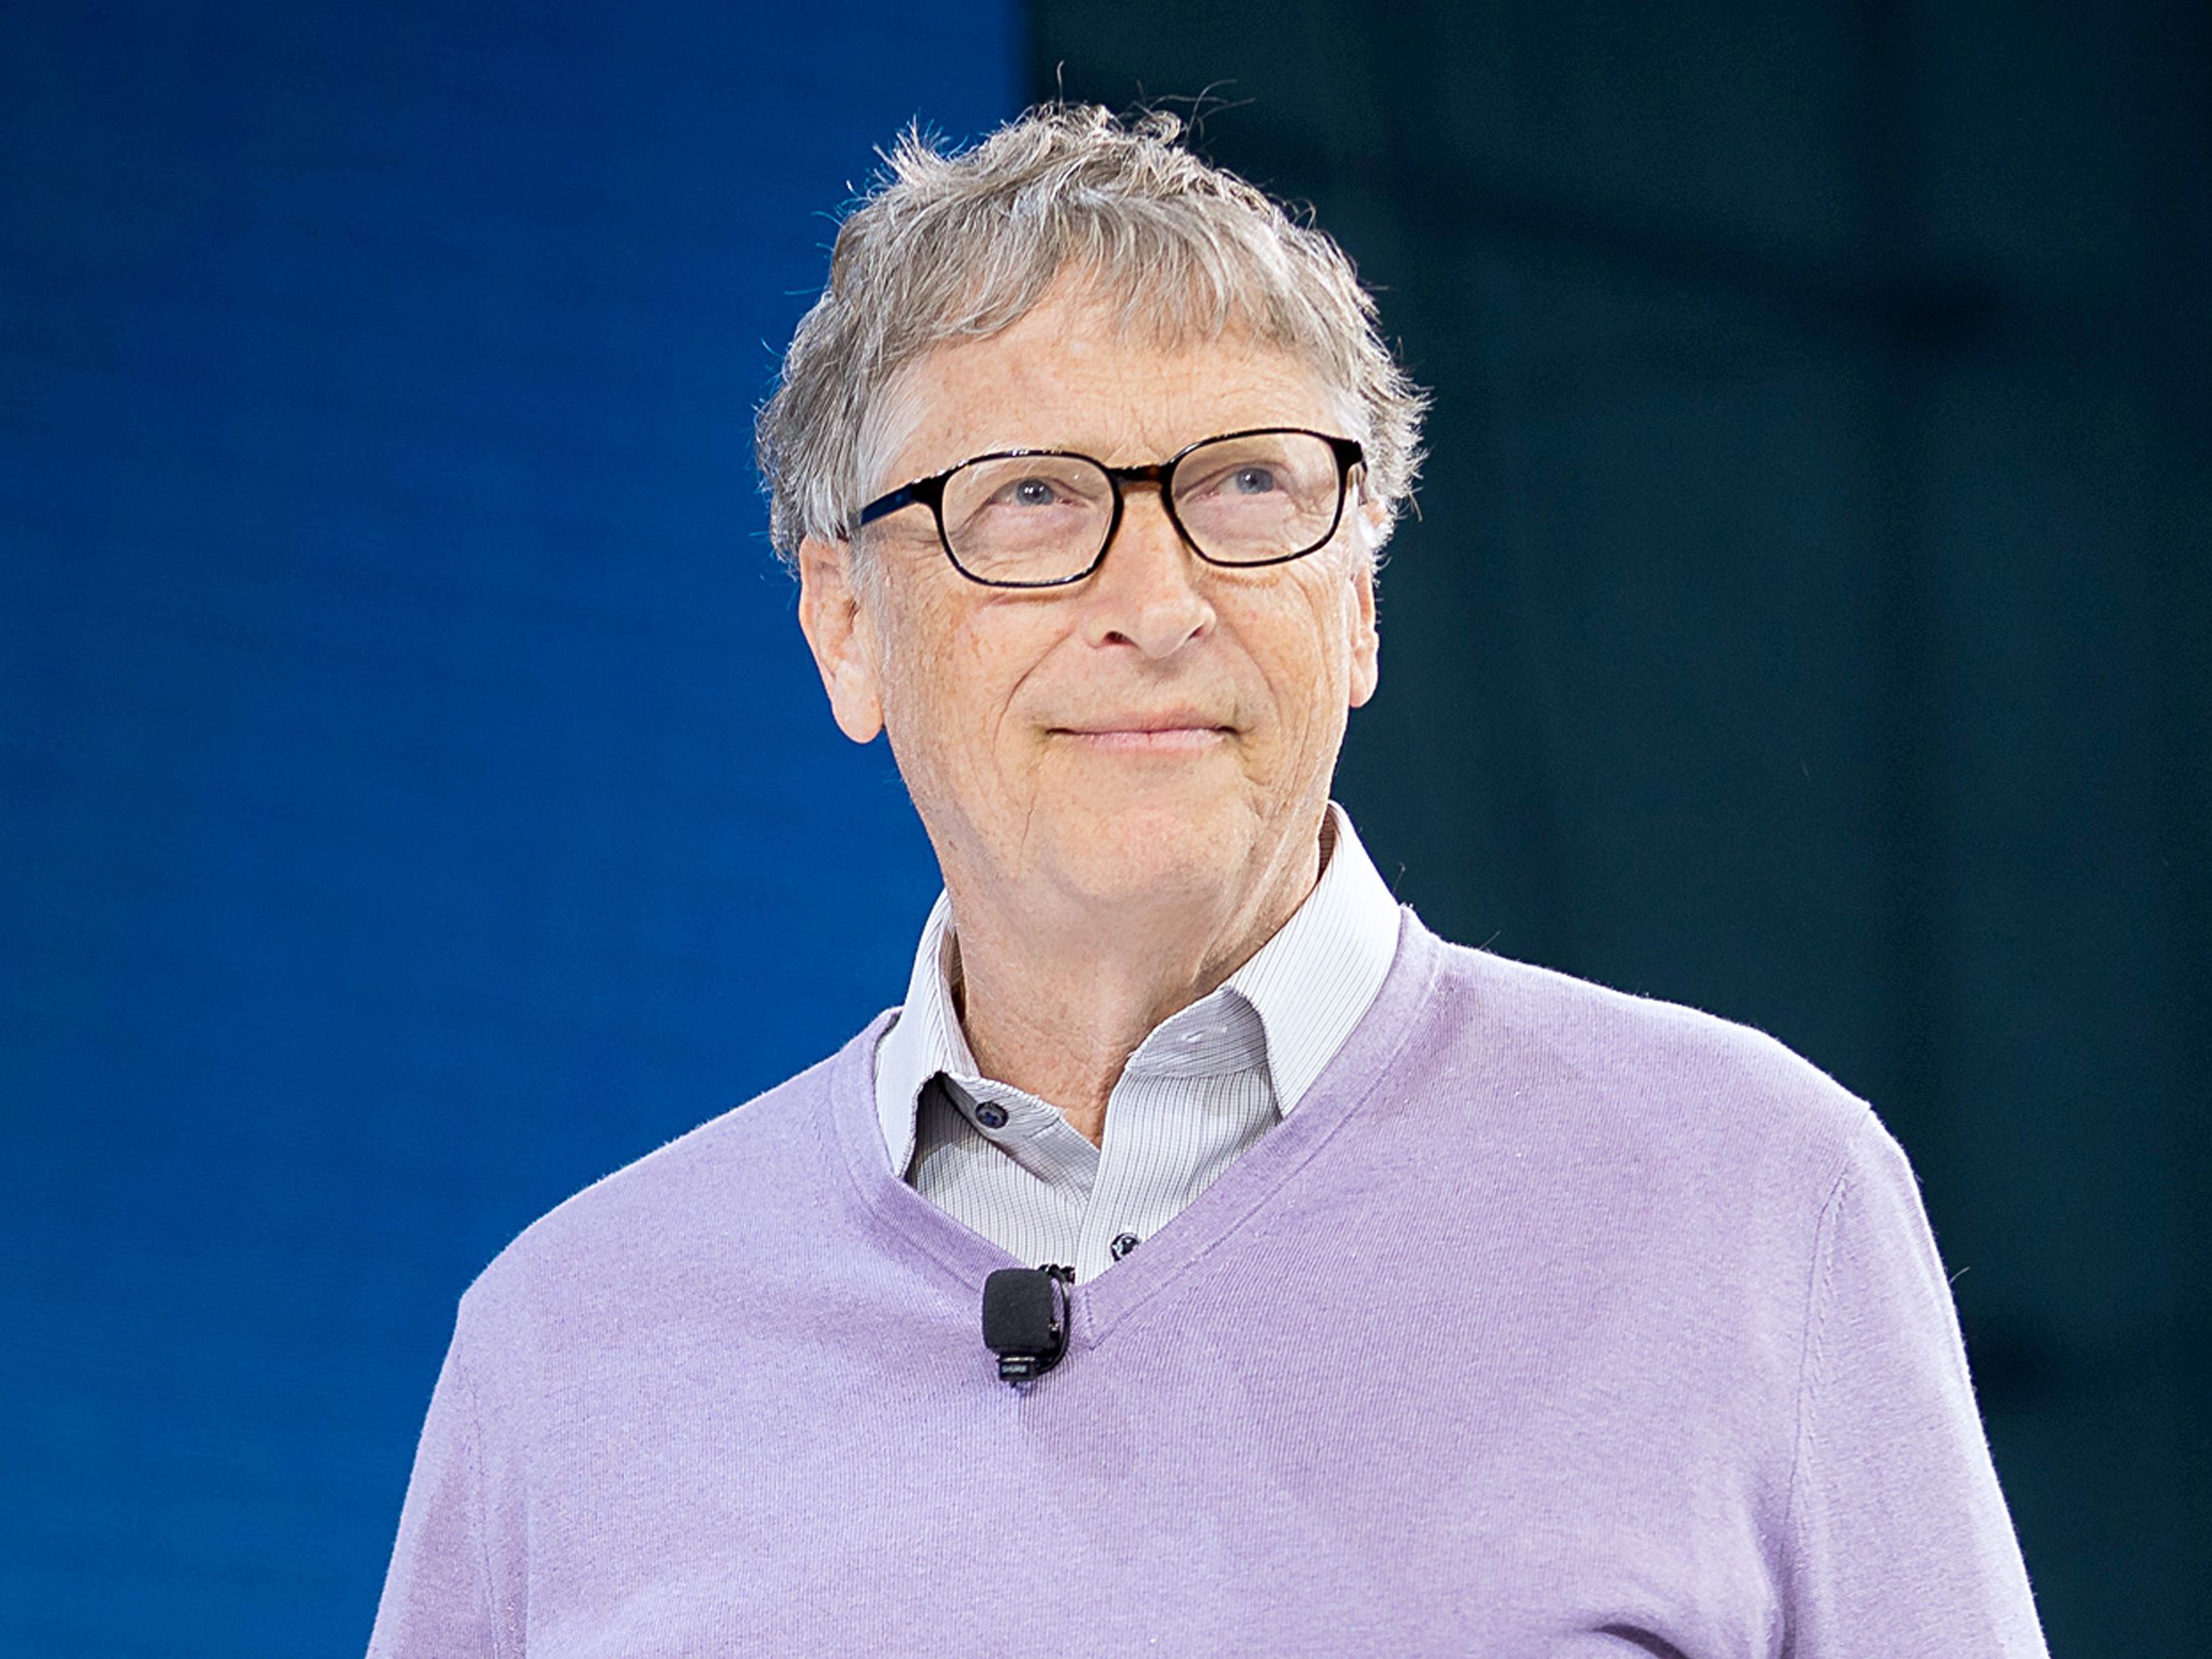 Bill Gates says he worries about vaccine rollout after government response  to pandemic - The Boston Globe